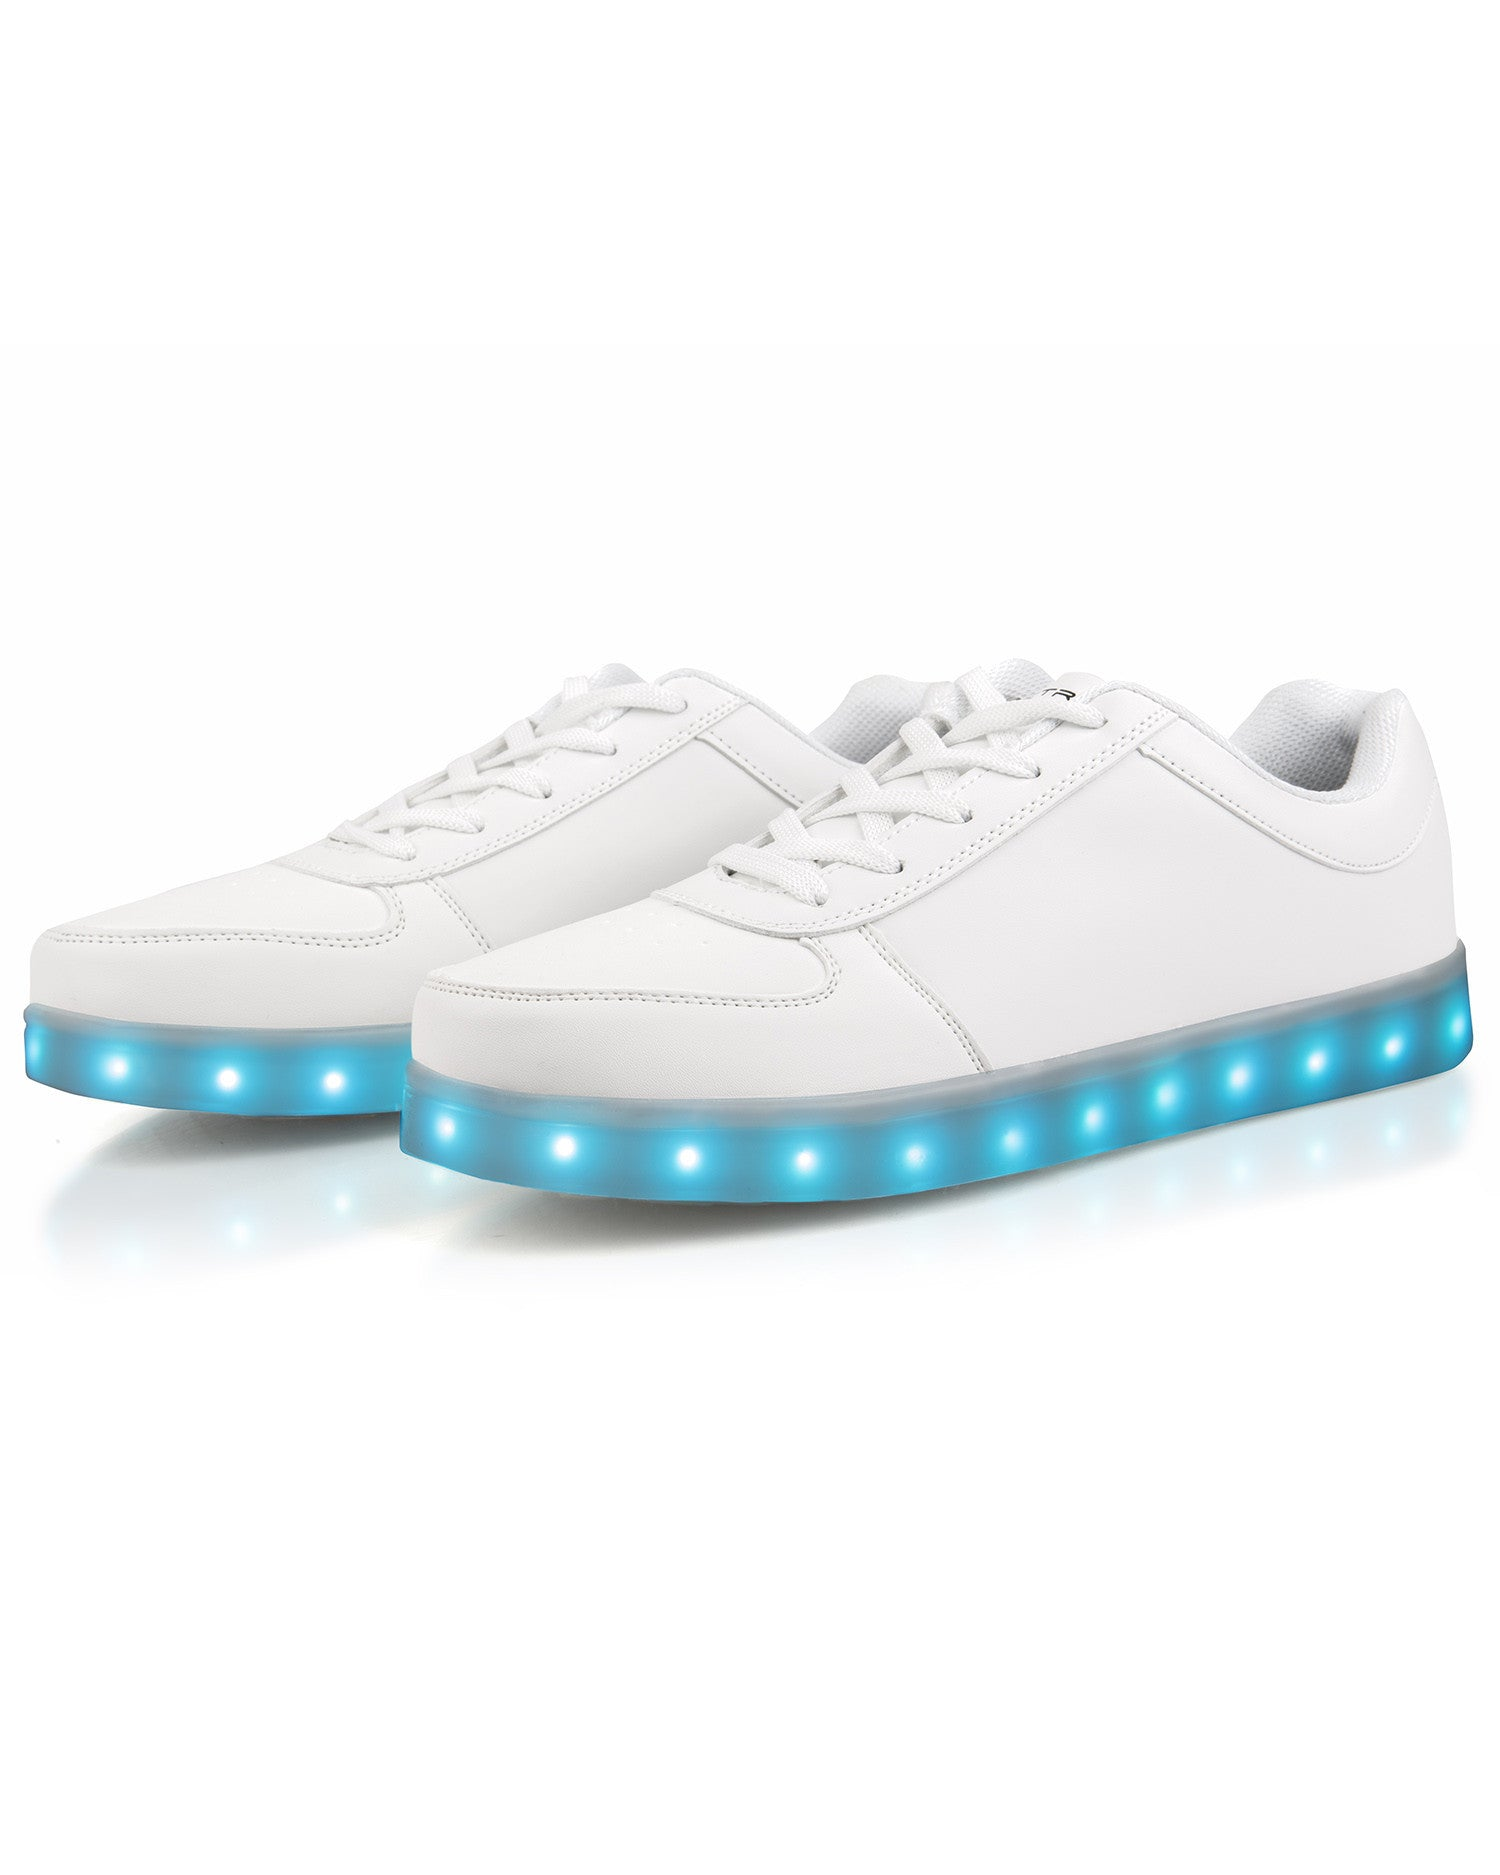 Electric Shoes - All Black - Electric Styles | World's Number 1 Light Up Shoe Store - {product_type}} -  - 11